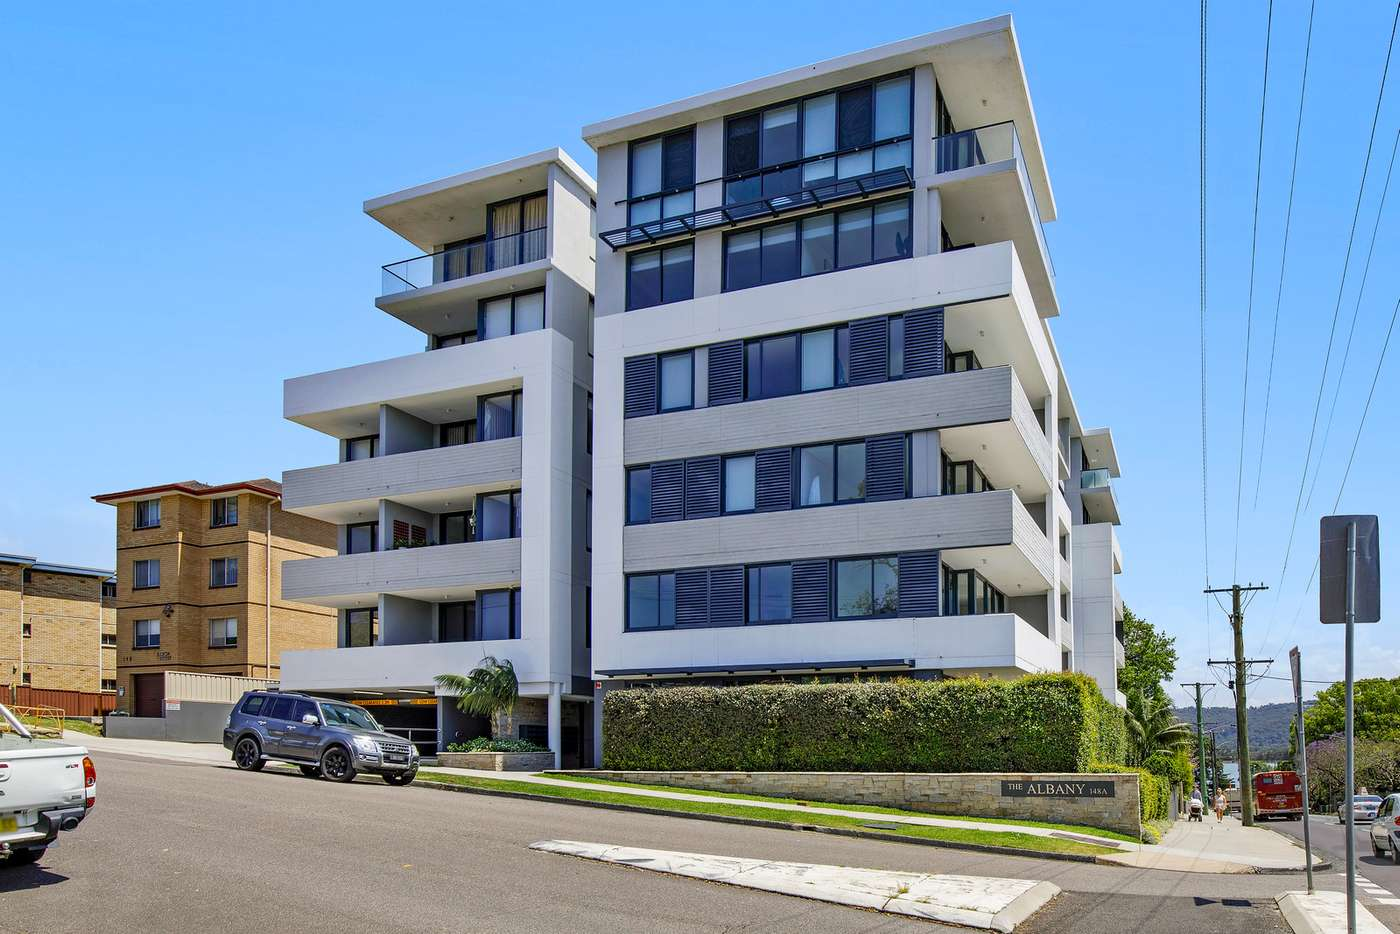 Main view of Homely apartment listing, 401/148a Albany Street, Point Frederick NSW 2250